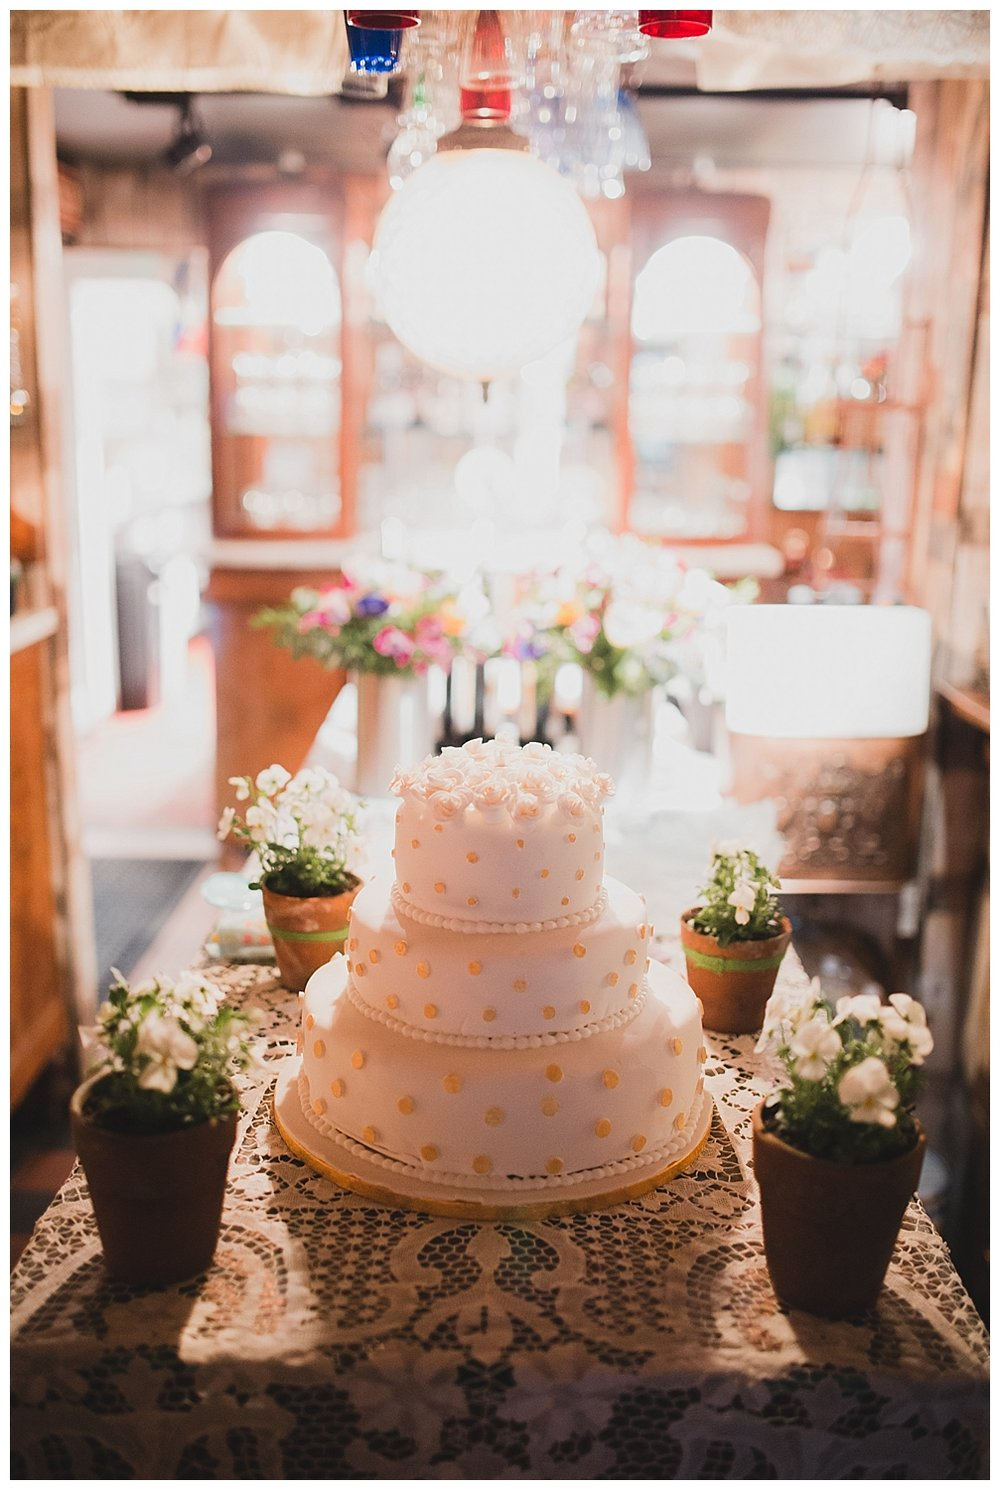 Wedding cake at The Roebuck Inn Mobberley Cheshire.